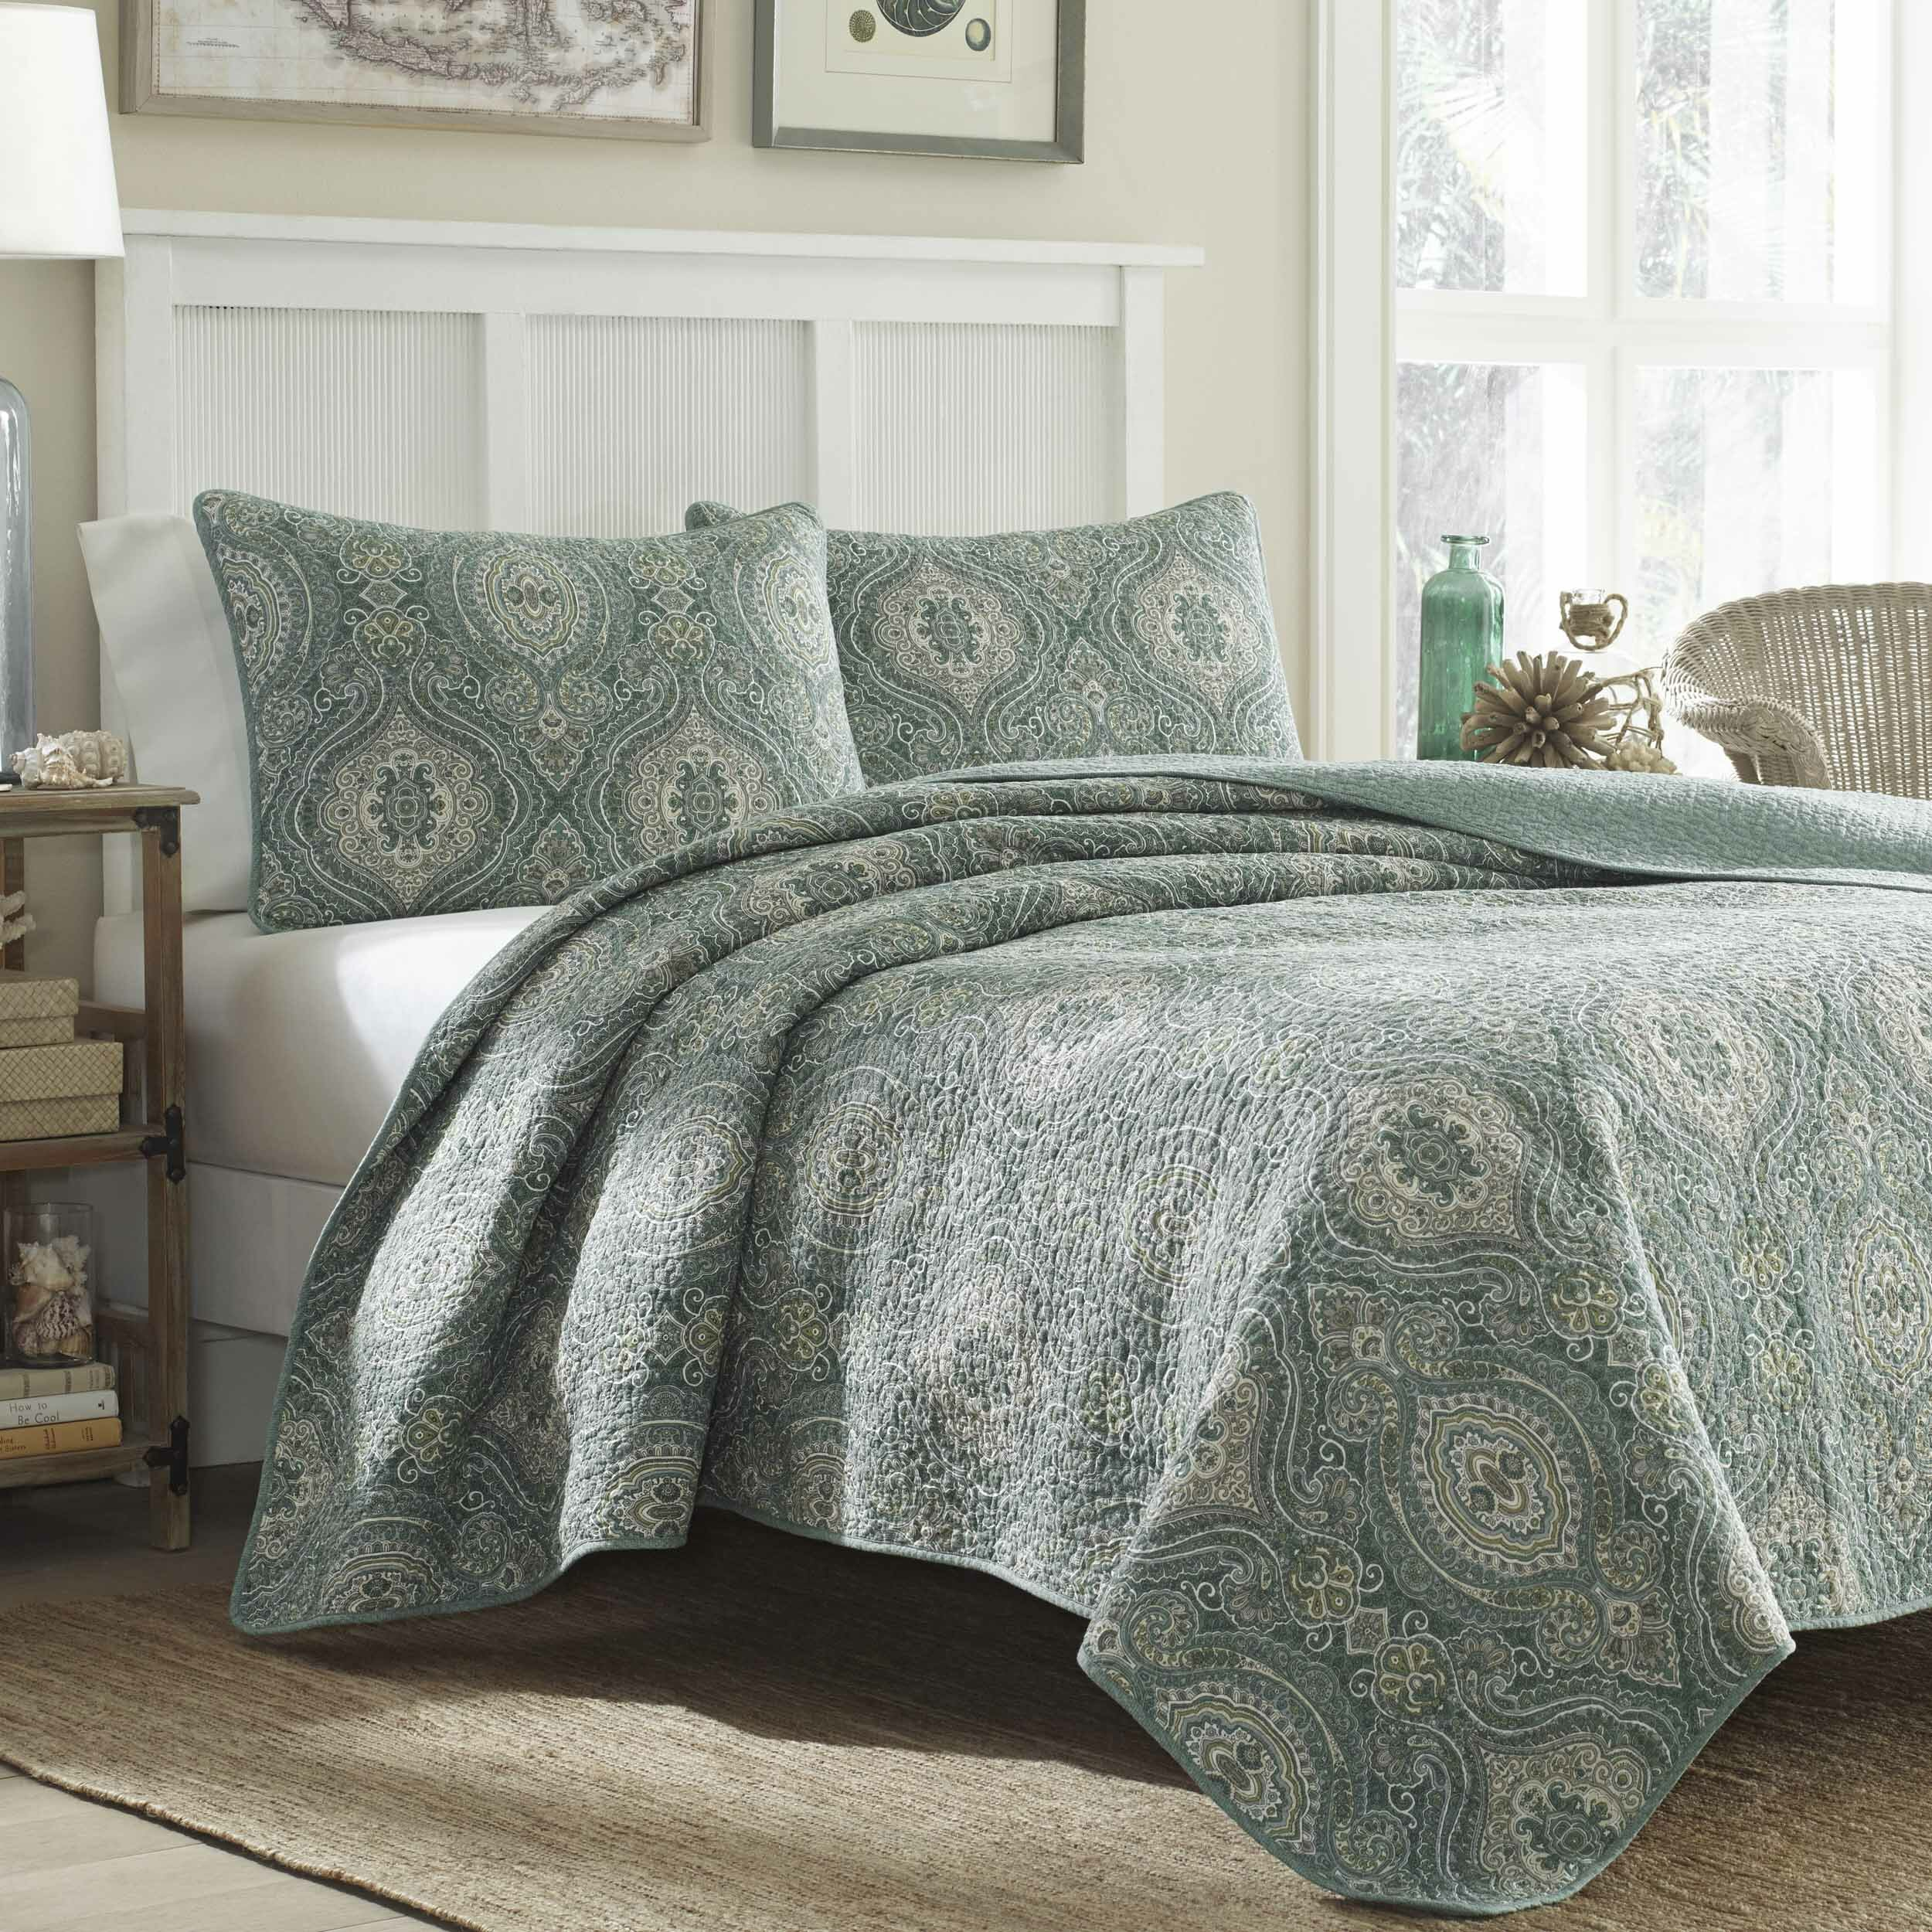 Twin Bedding Wayfair